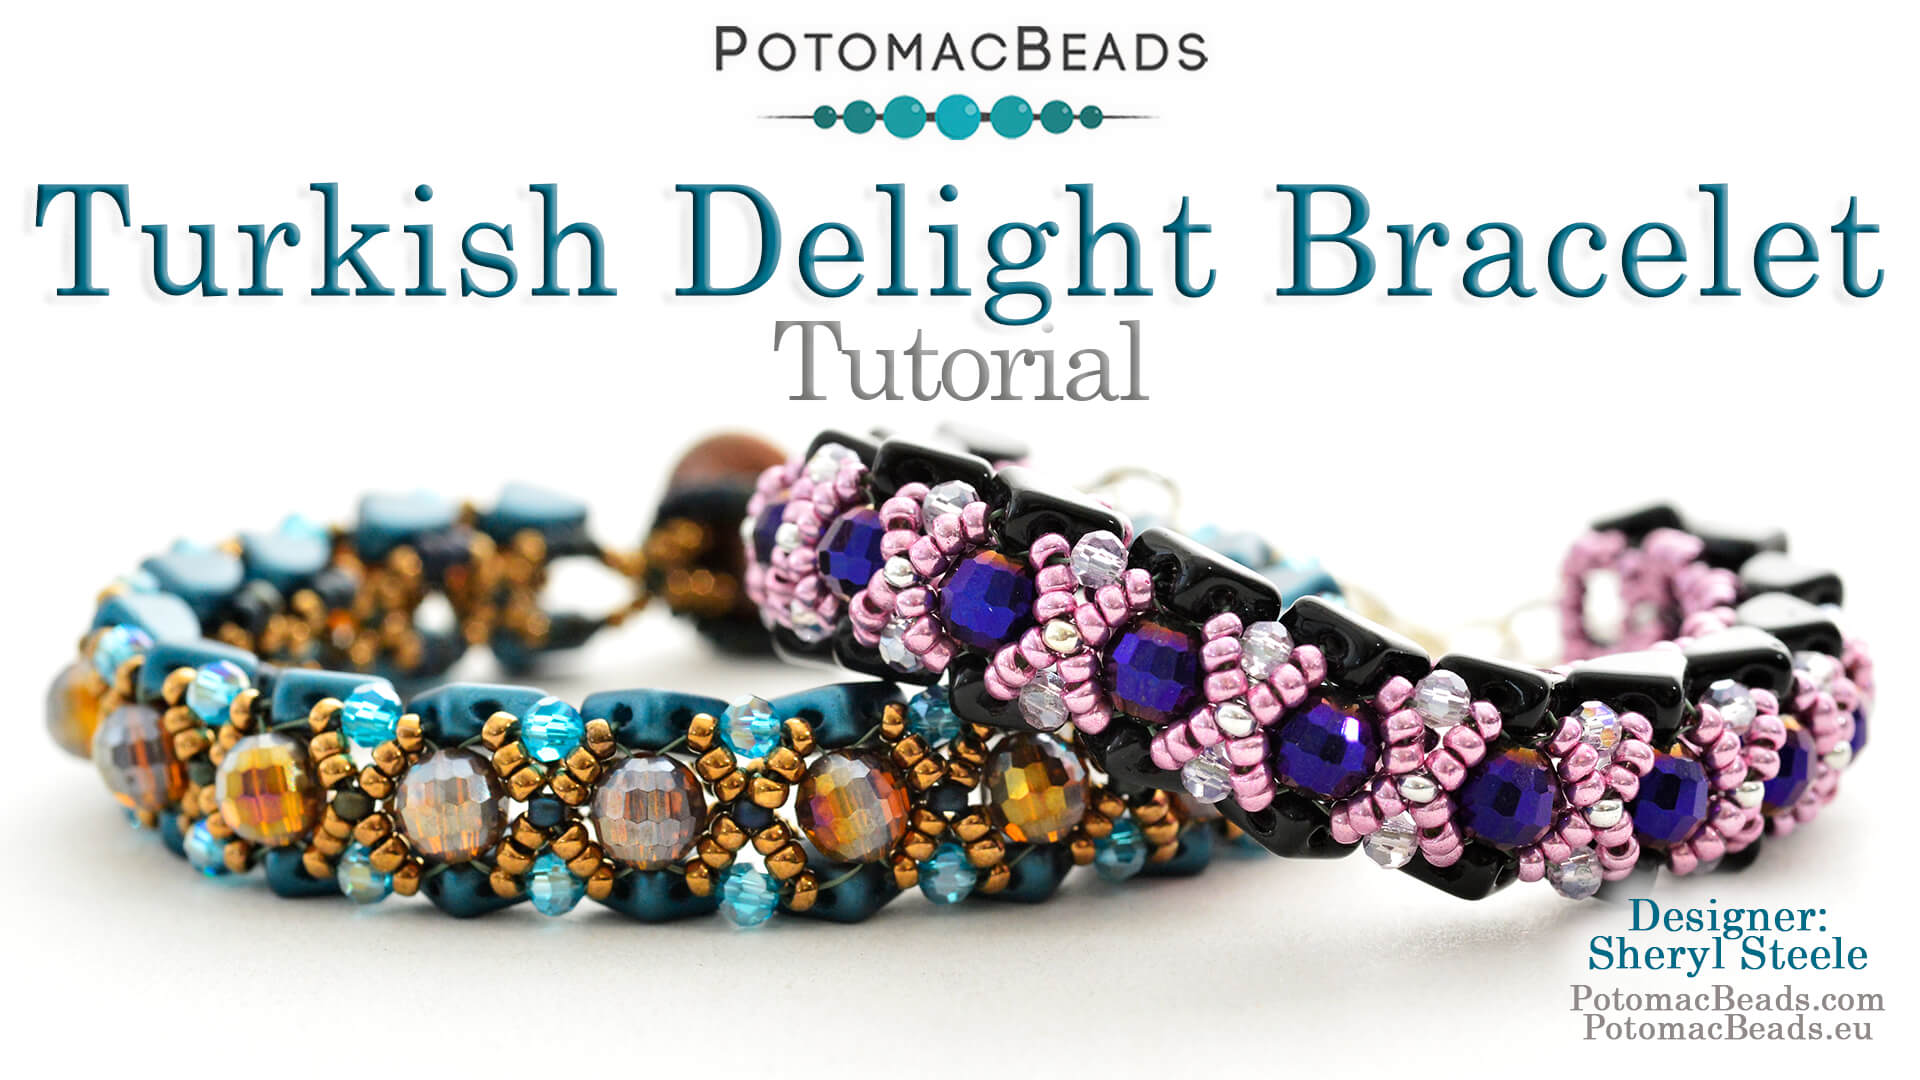 How to Bead / Videos Sorted by Beads / QuadBow & PieDuo Bead Videos / Turkish Delight Bracelet Tutorial